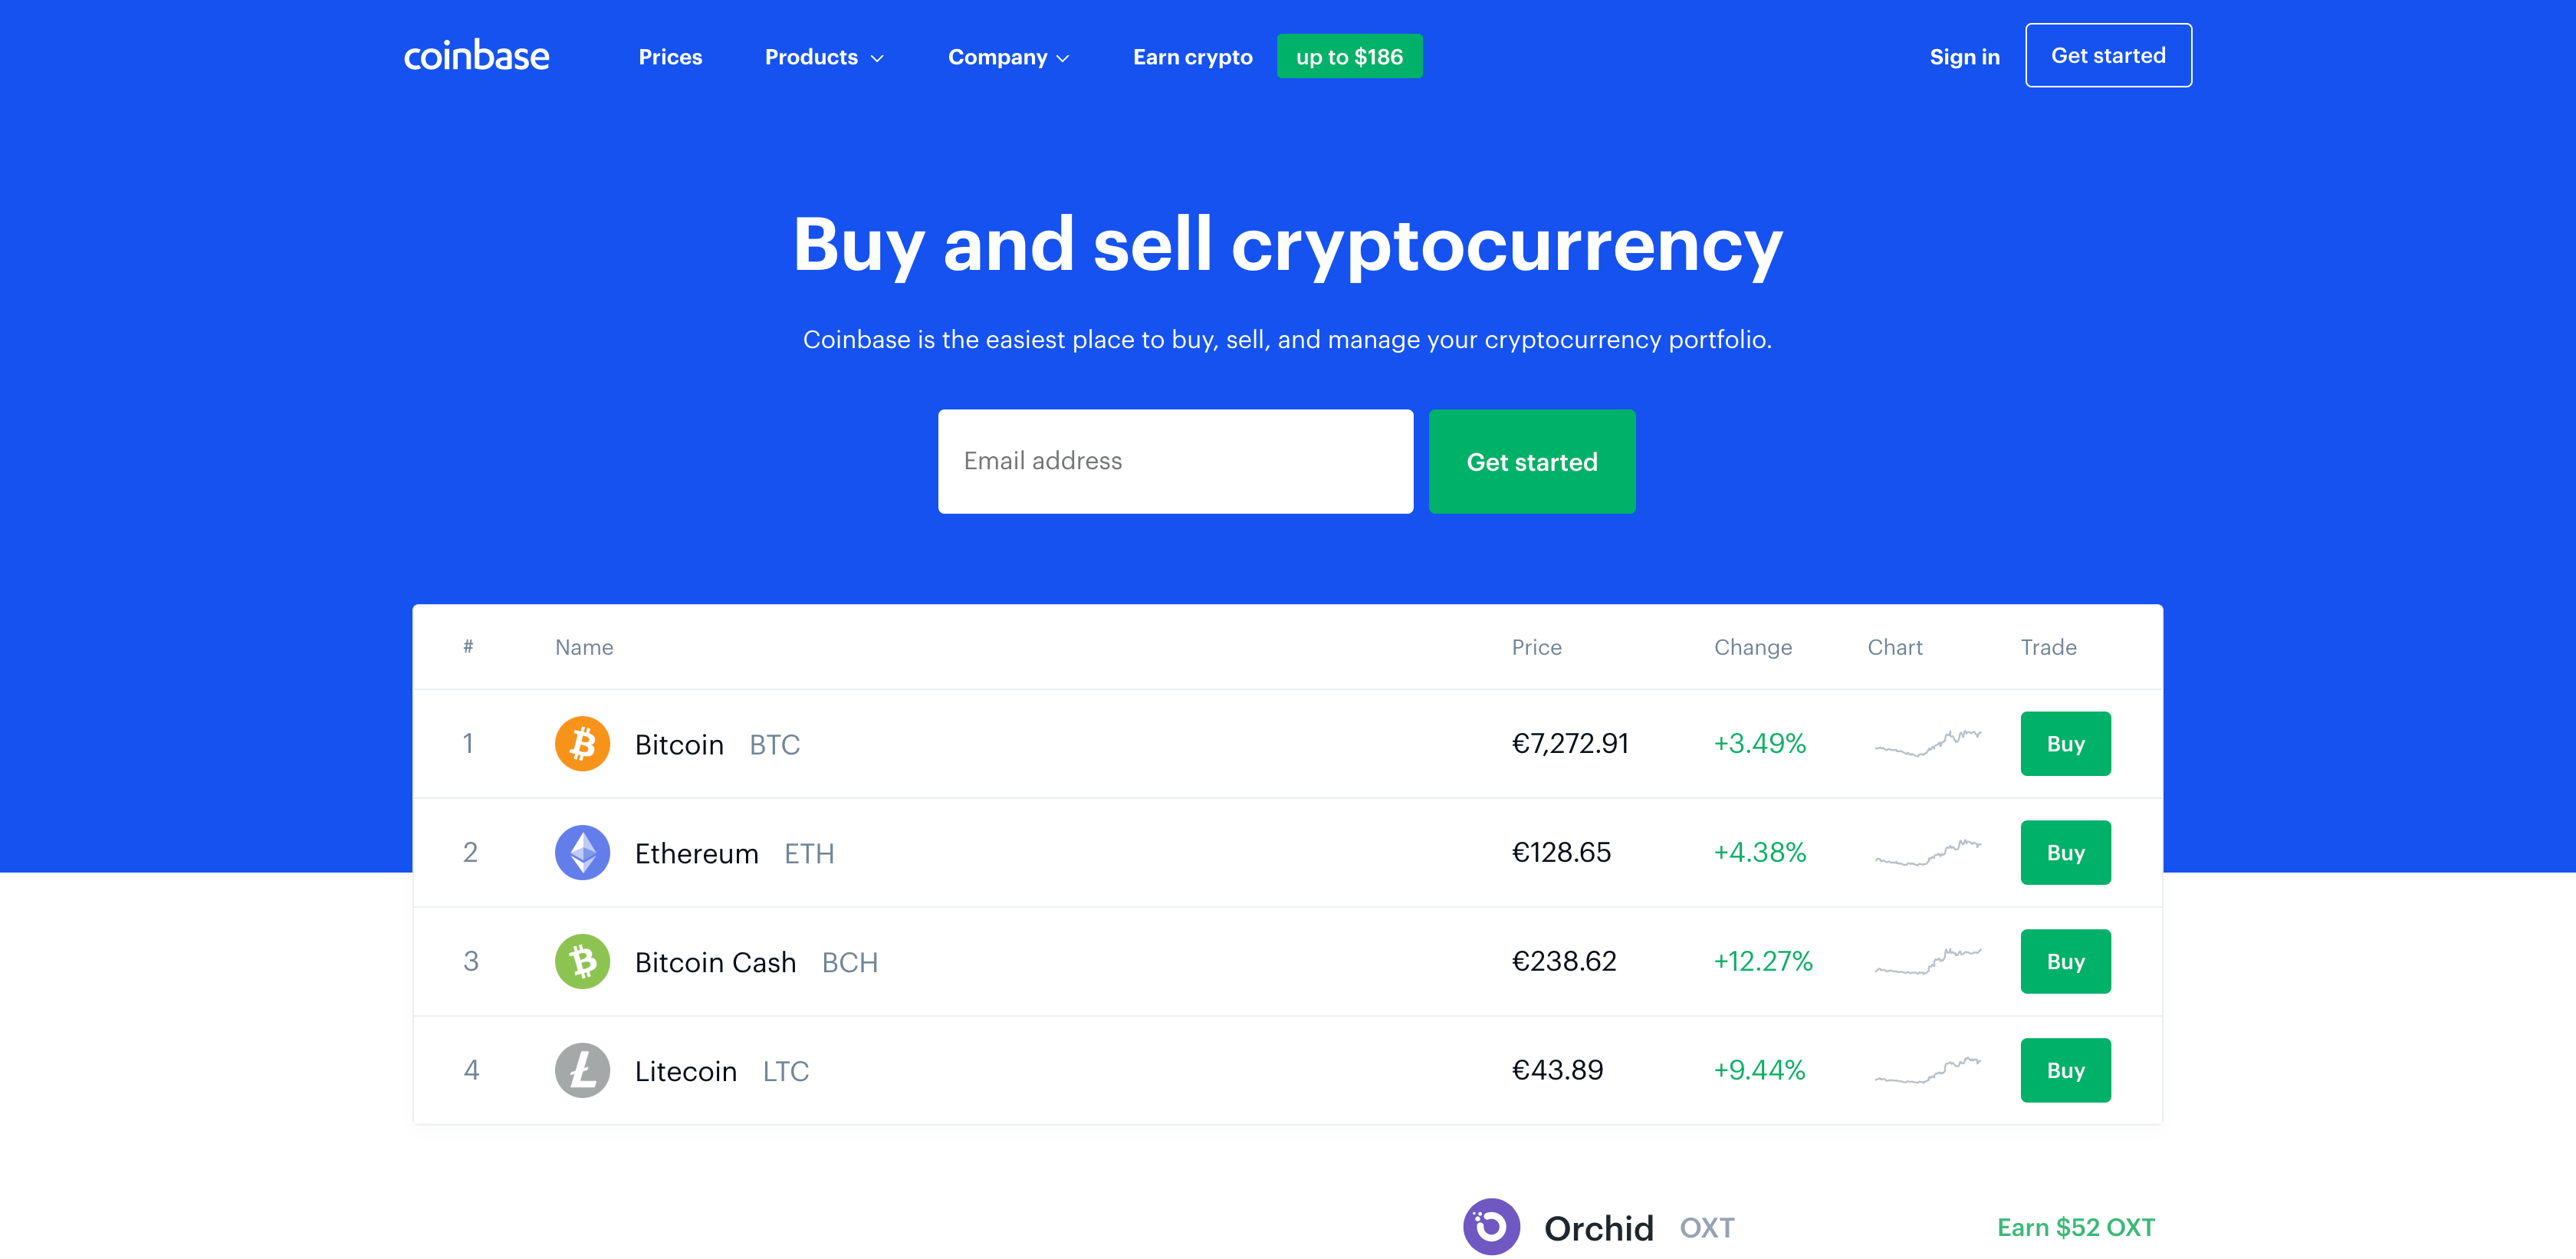 55 88 Growth How To Buy Kicktoken Kick A Step By Step Guide By Crypto Buying Tips Medium